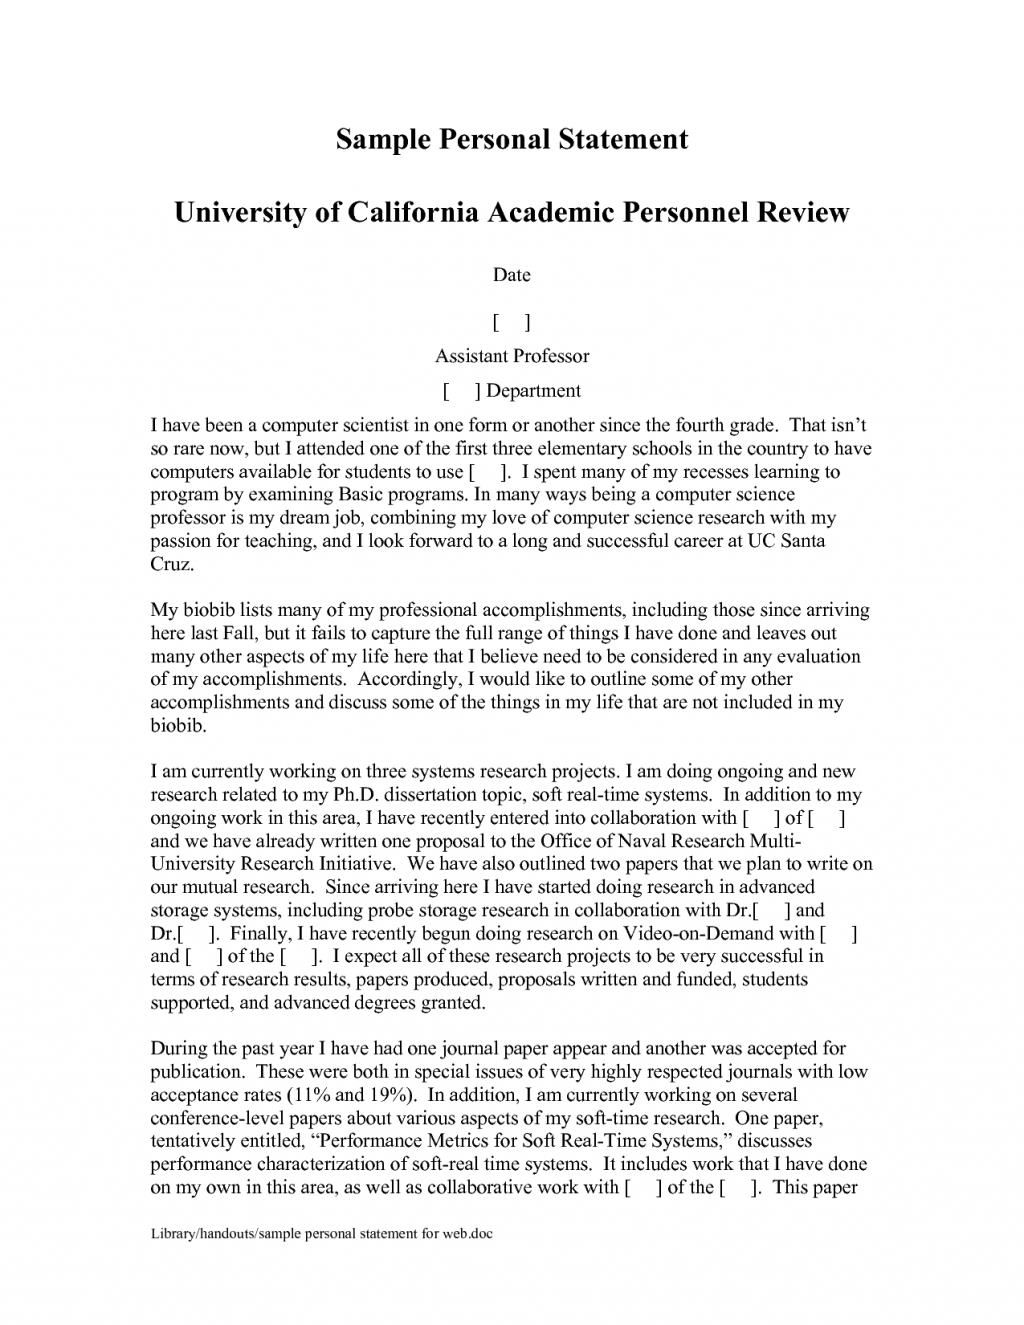 019 Harvard Business School Essays Image Ideas Template Sample Mba Entrance Writing Unit Graduate Personal 1024x1325 Archaicawful Essay Tips That Worked Full